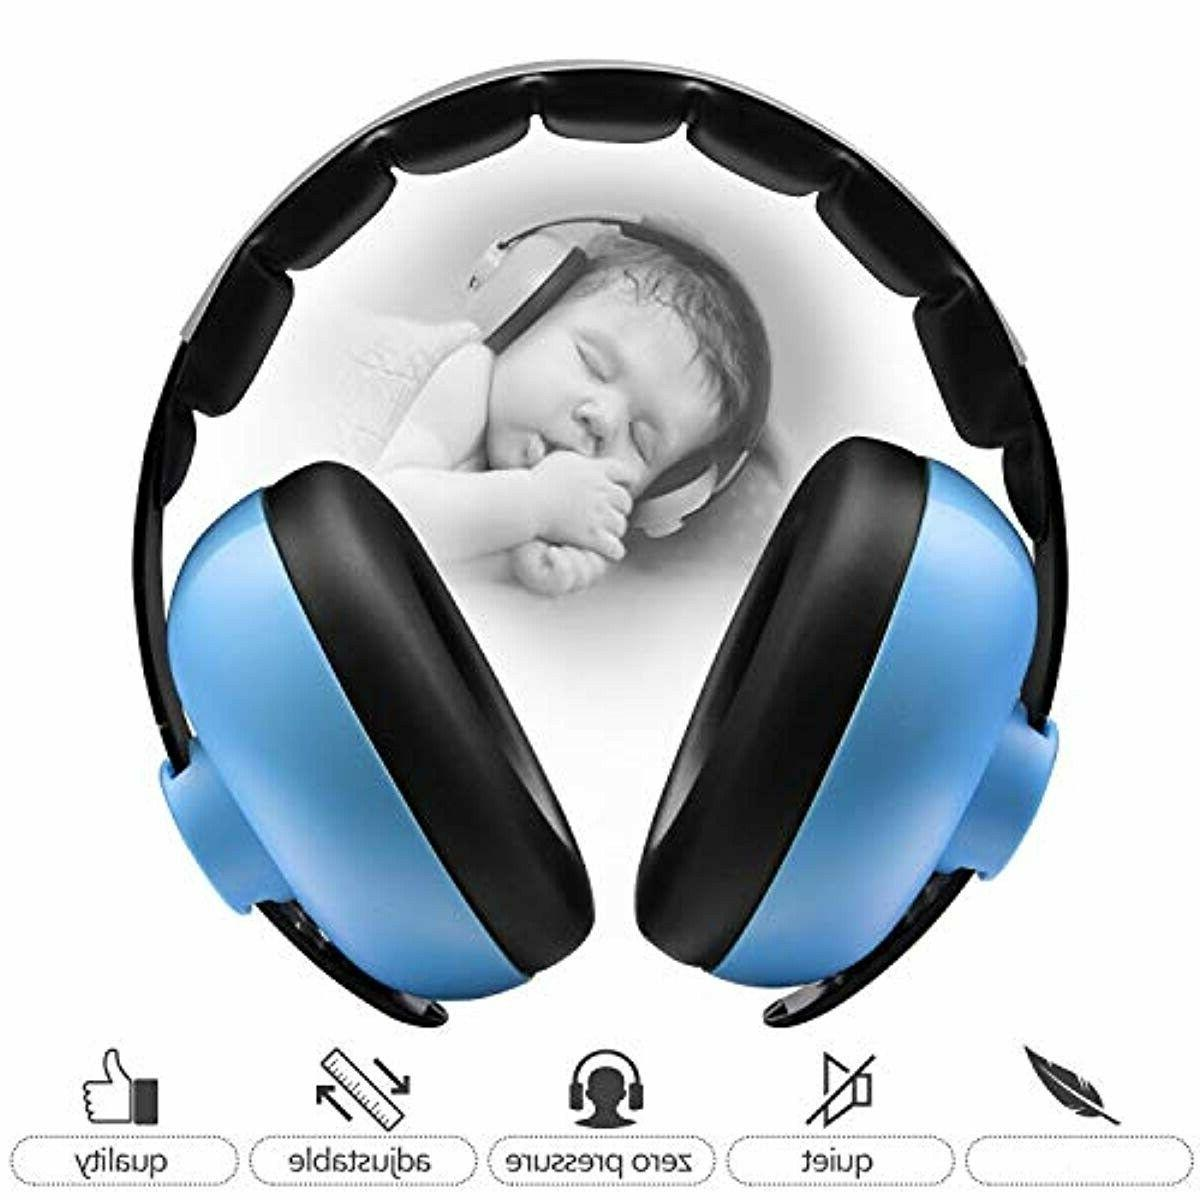 bbtkcare baby ear protection noise cancelling headphones